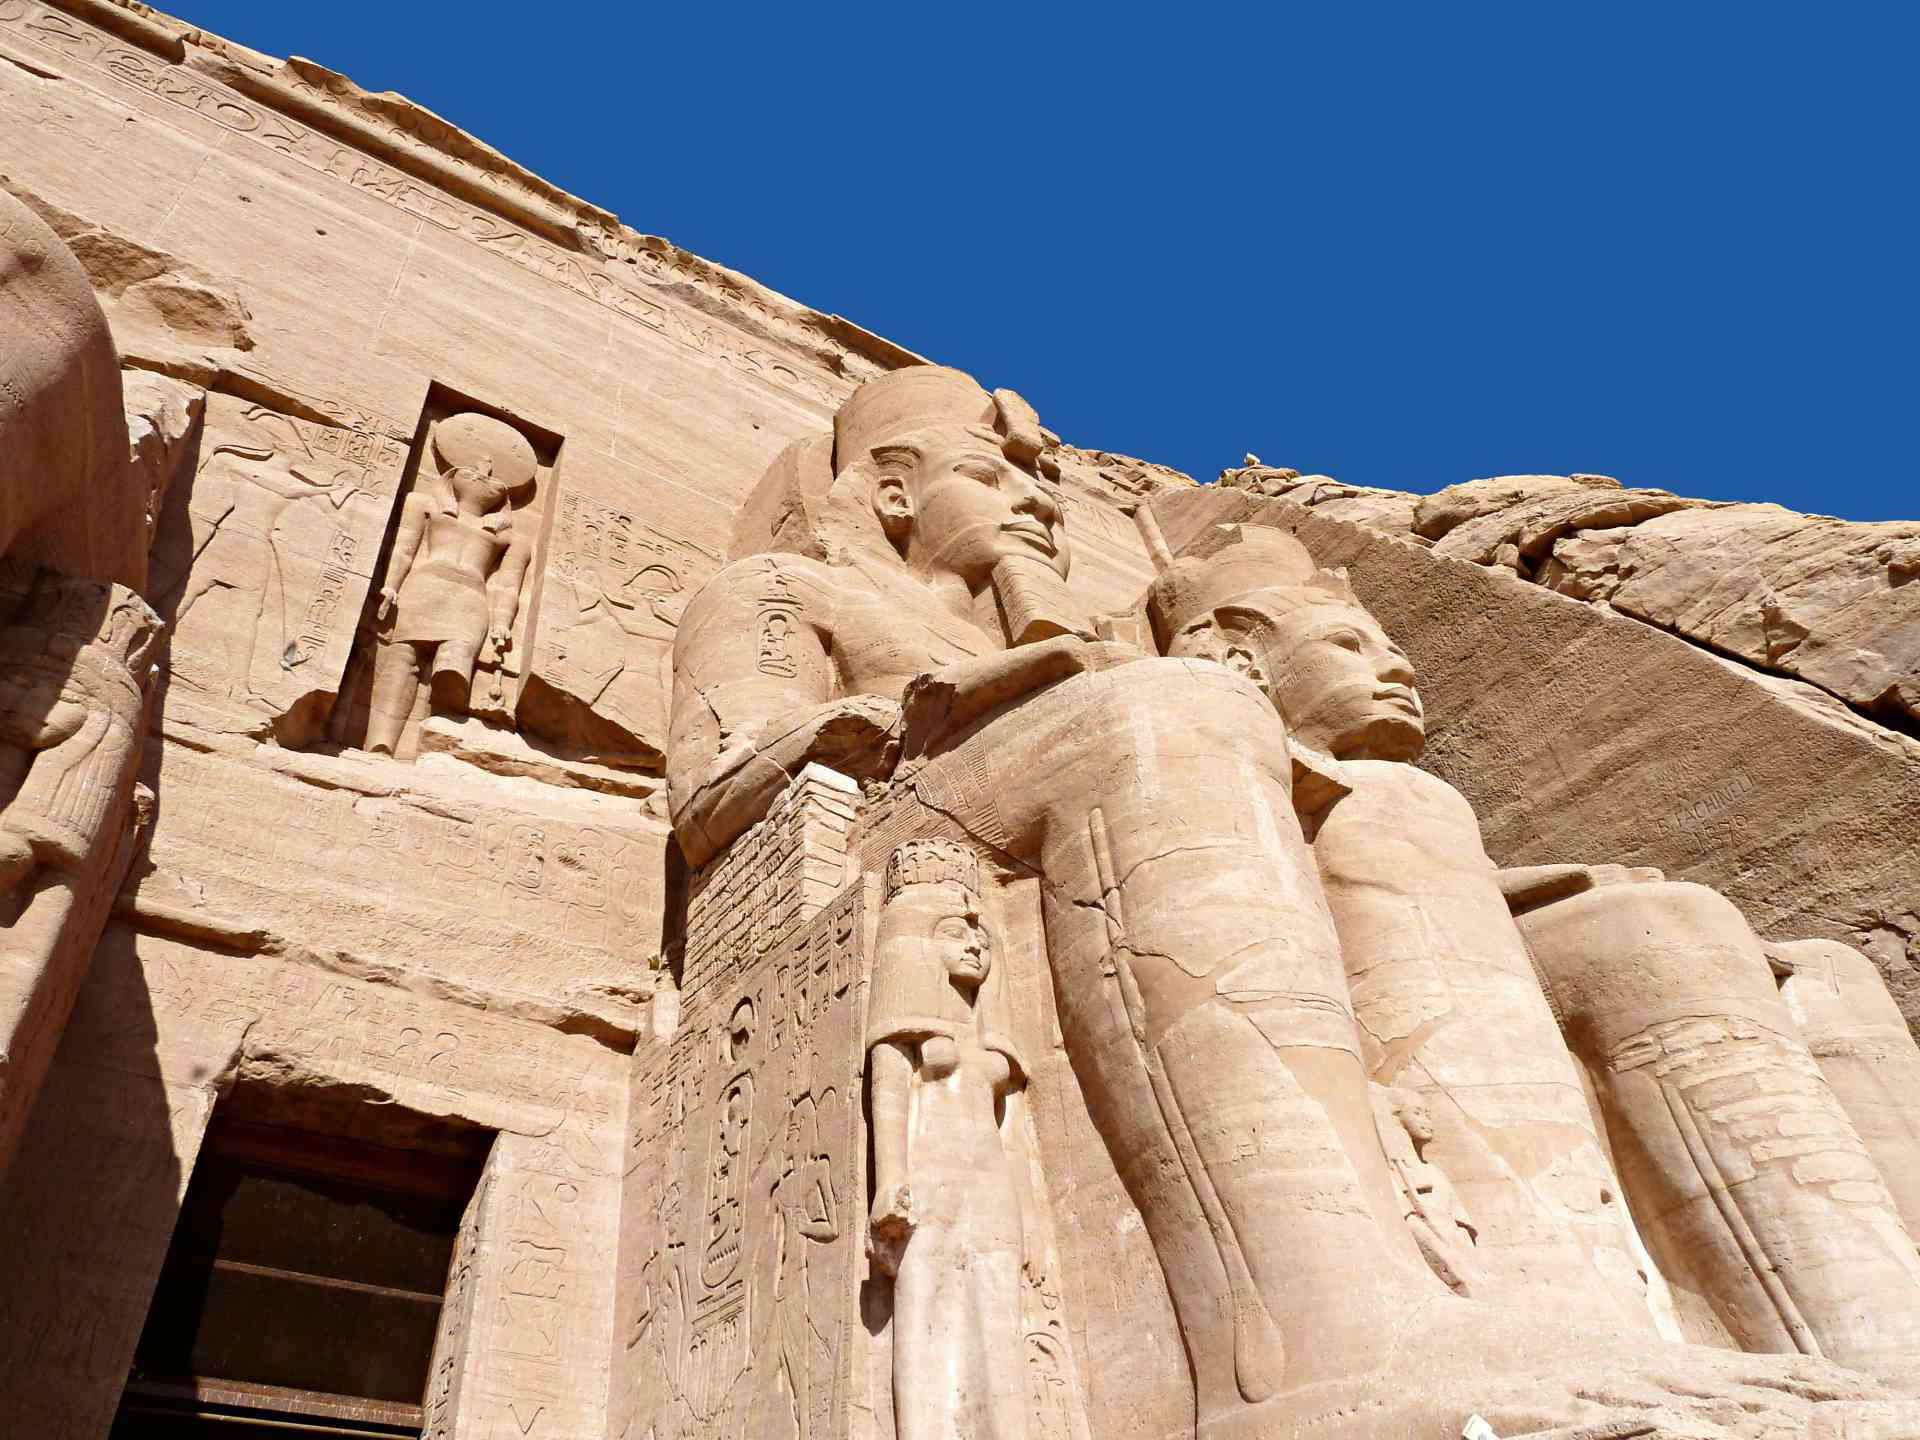 The stunning temples of Abu Simbel, Egypt